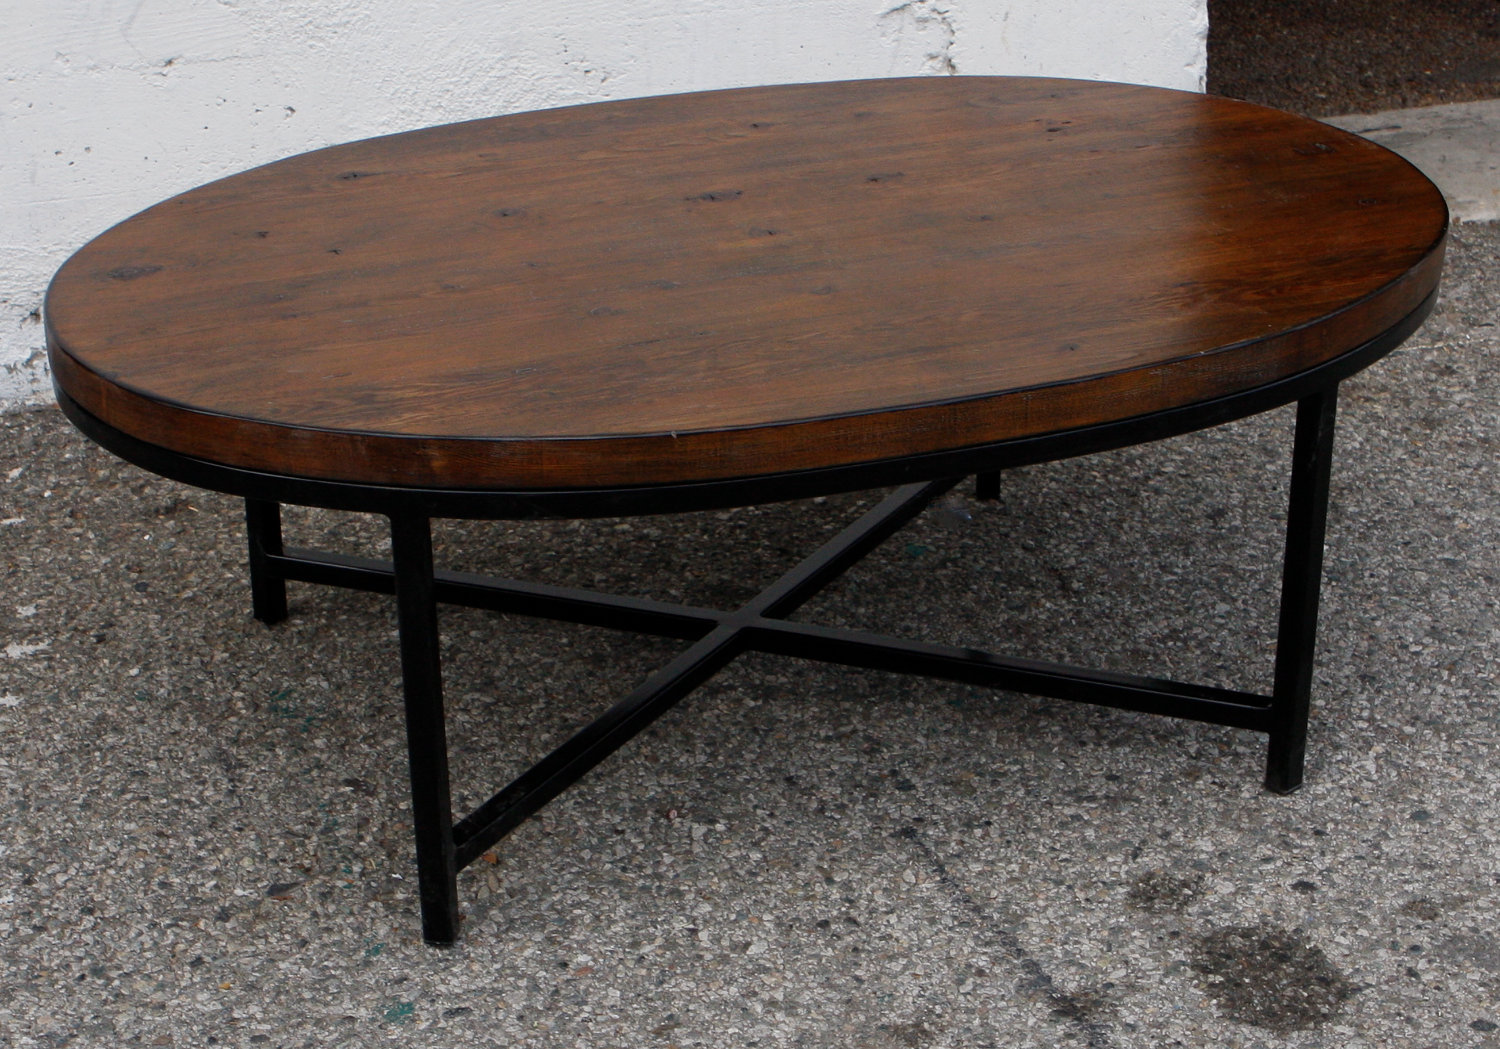 Dark Wooden Coffee Table ~ Dark wood coffee table design images photos pictures